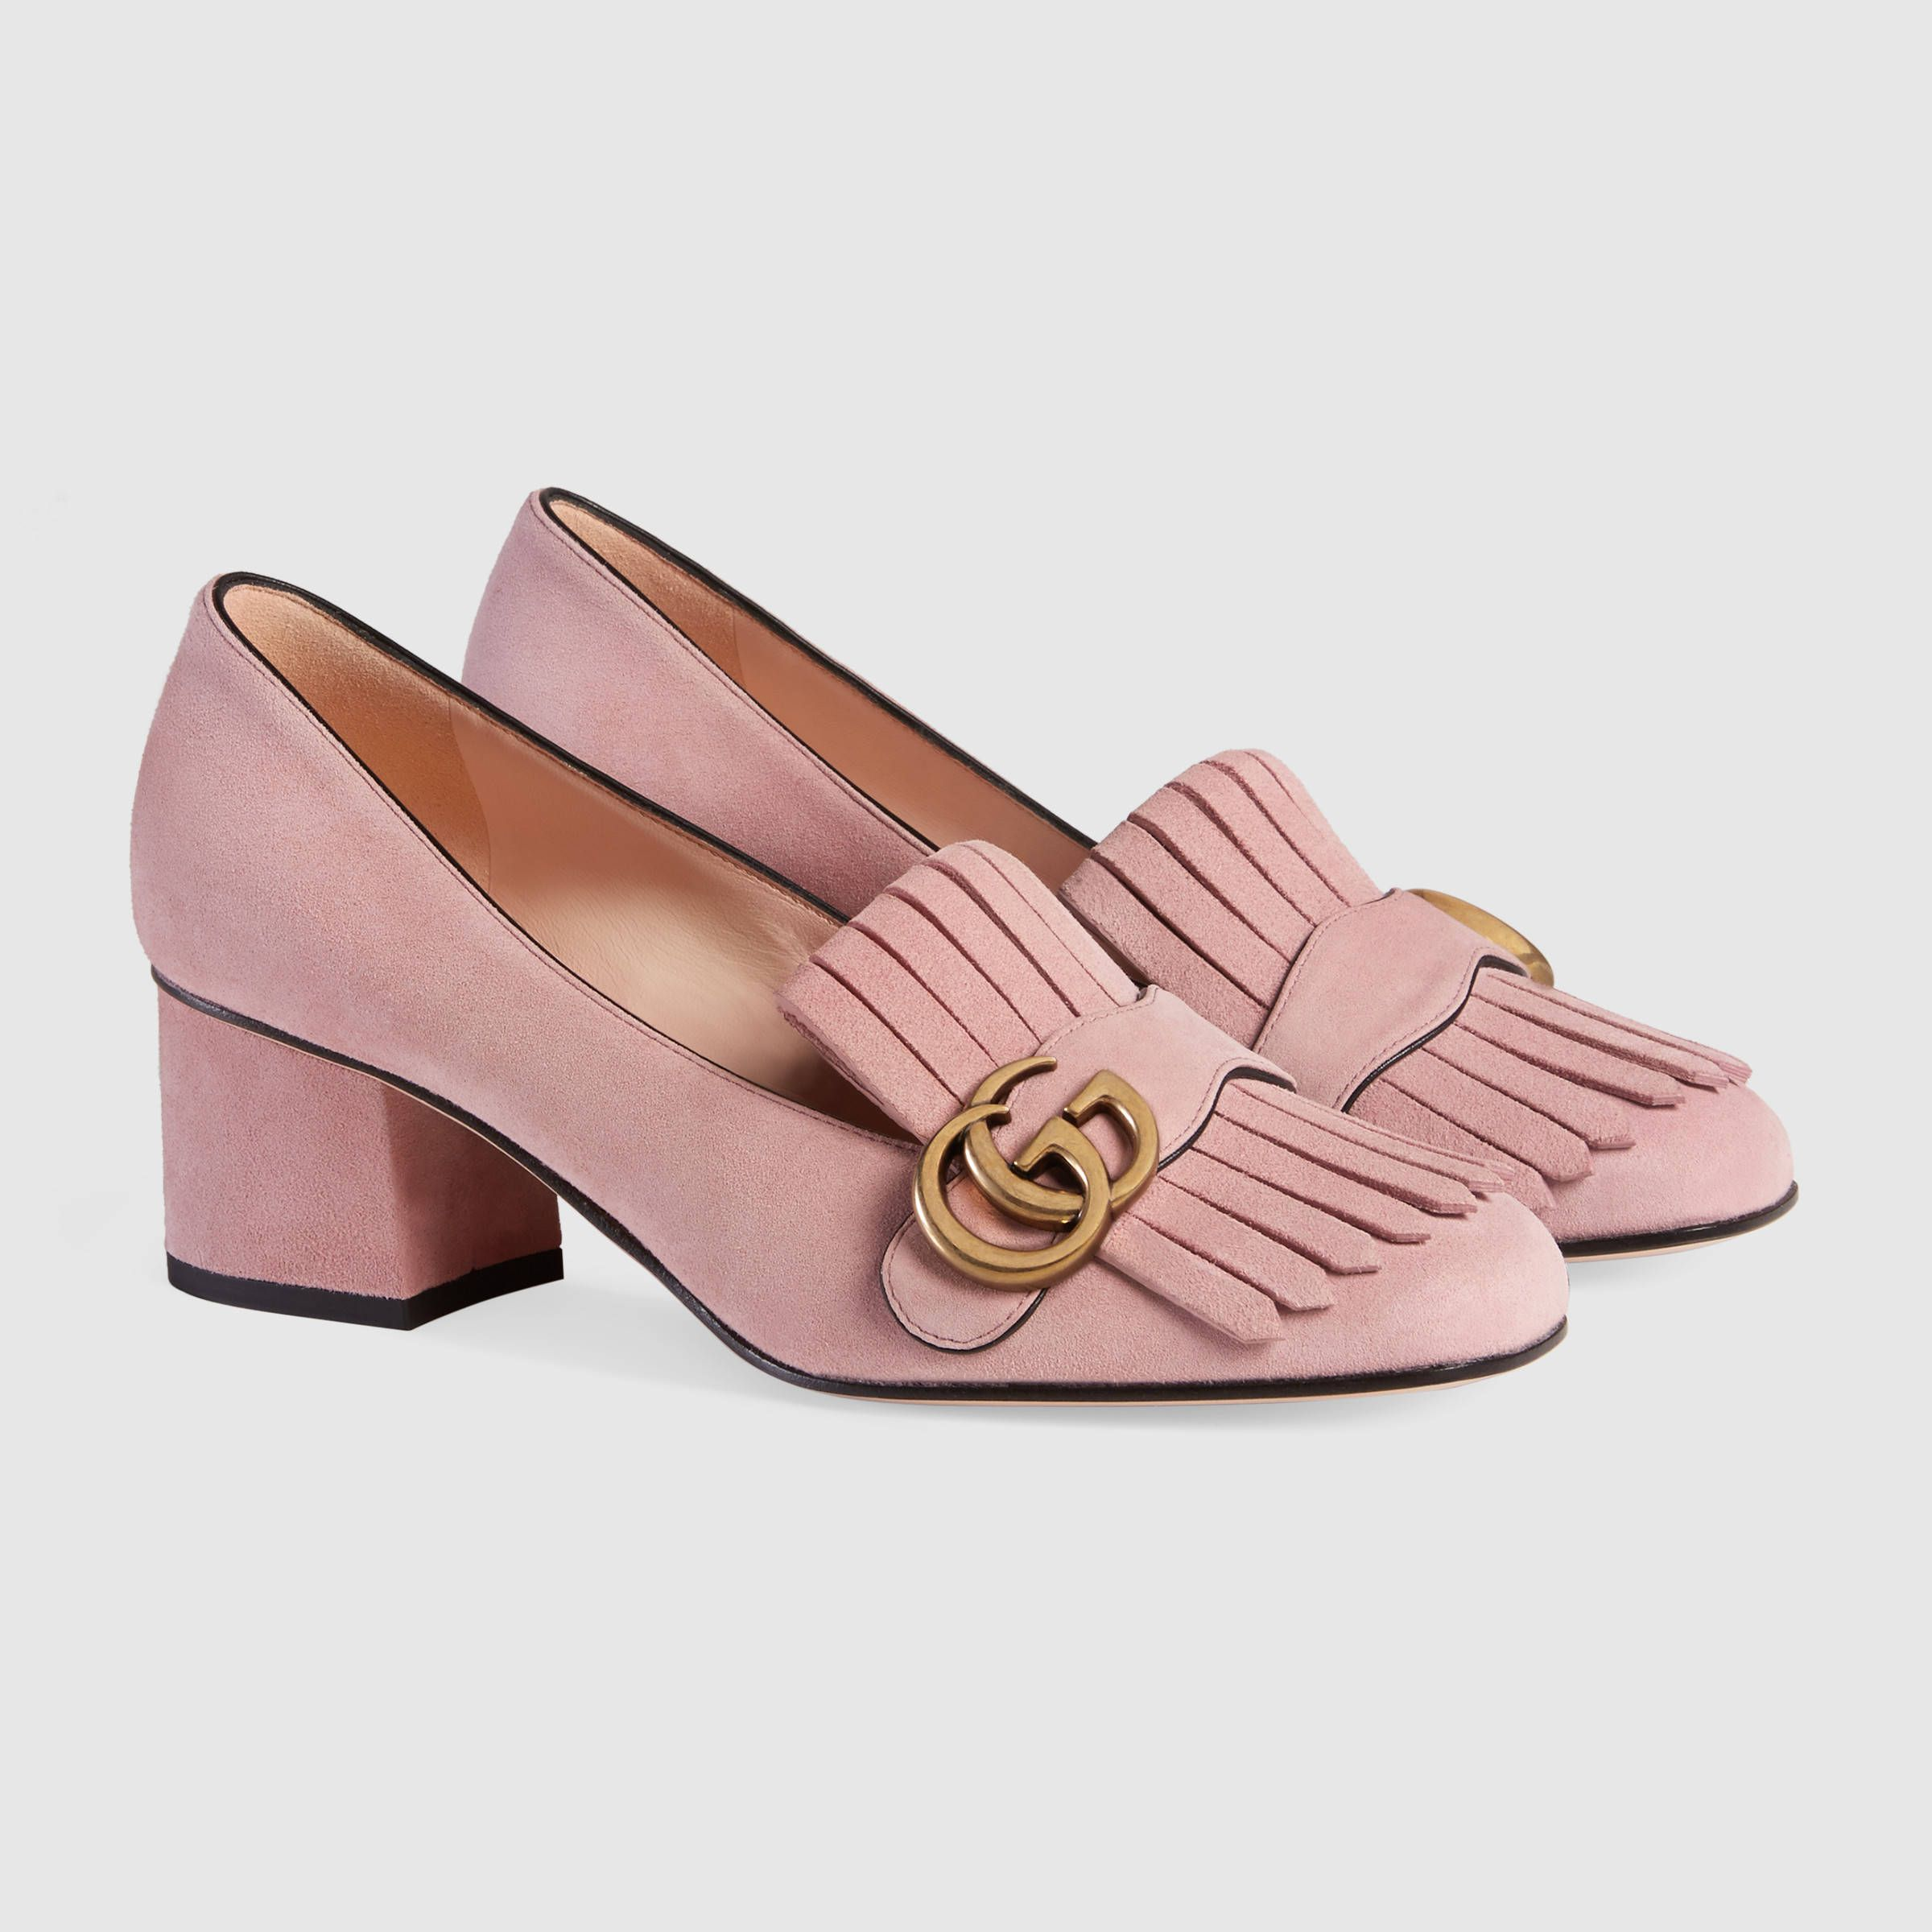 Gucci low heel light pink suede size 40.5 | Foot Candy | Pinterest ...